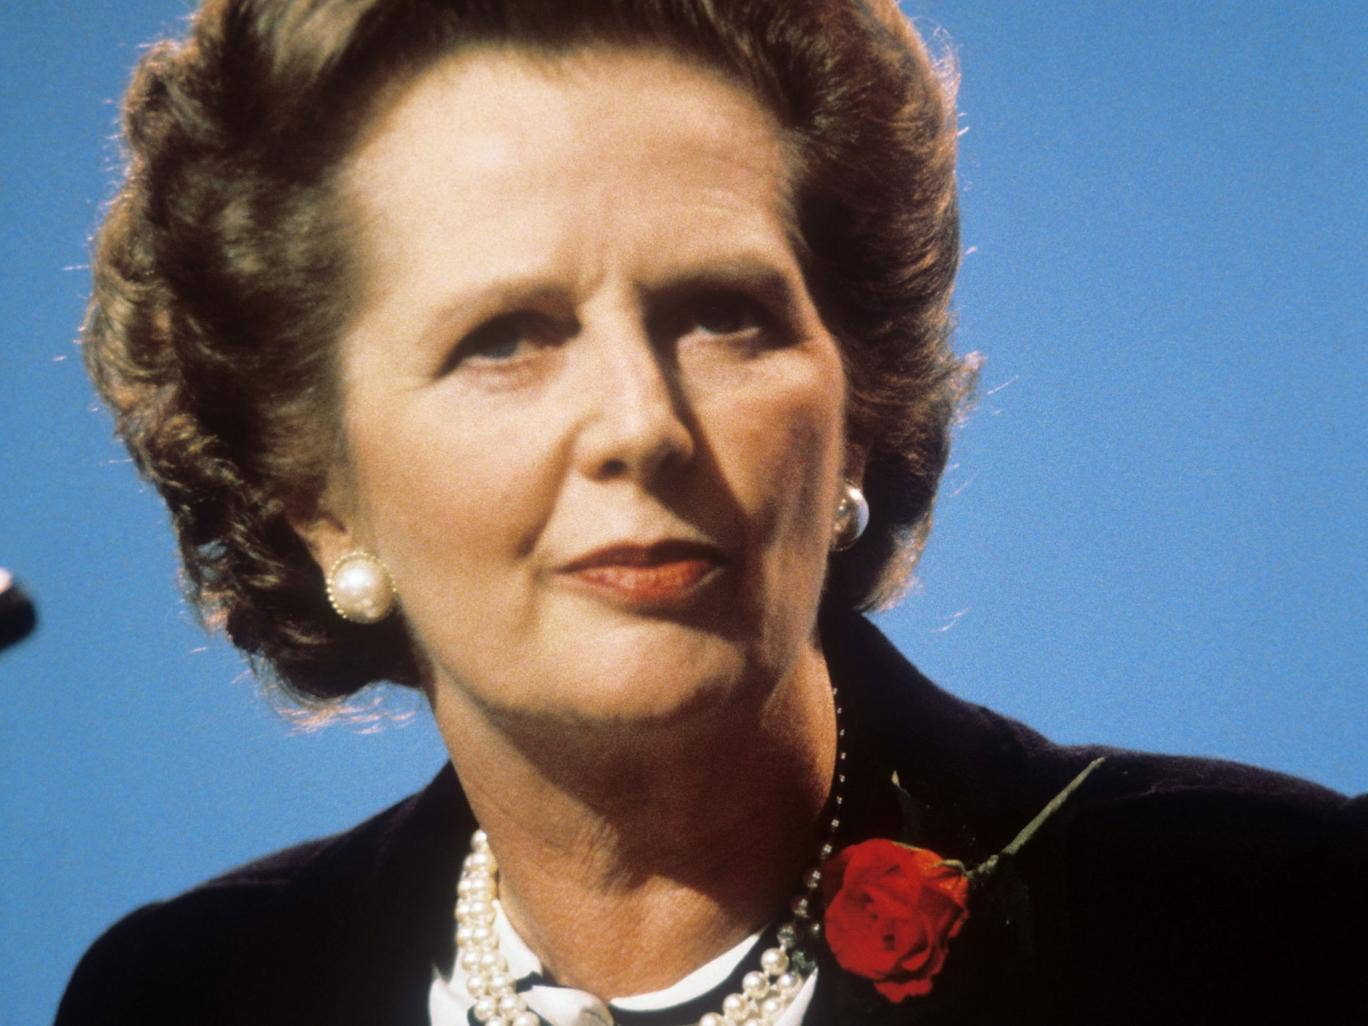 """thatcher senior personals Margaret thatcher 'personally covered up' child abuse allegations against senior ministers the tory prime minister is said to have held a meeting with a rising star, who was tipped for promotion, and told him: """"you have to clean up your sexual act."""